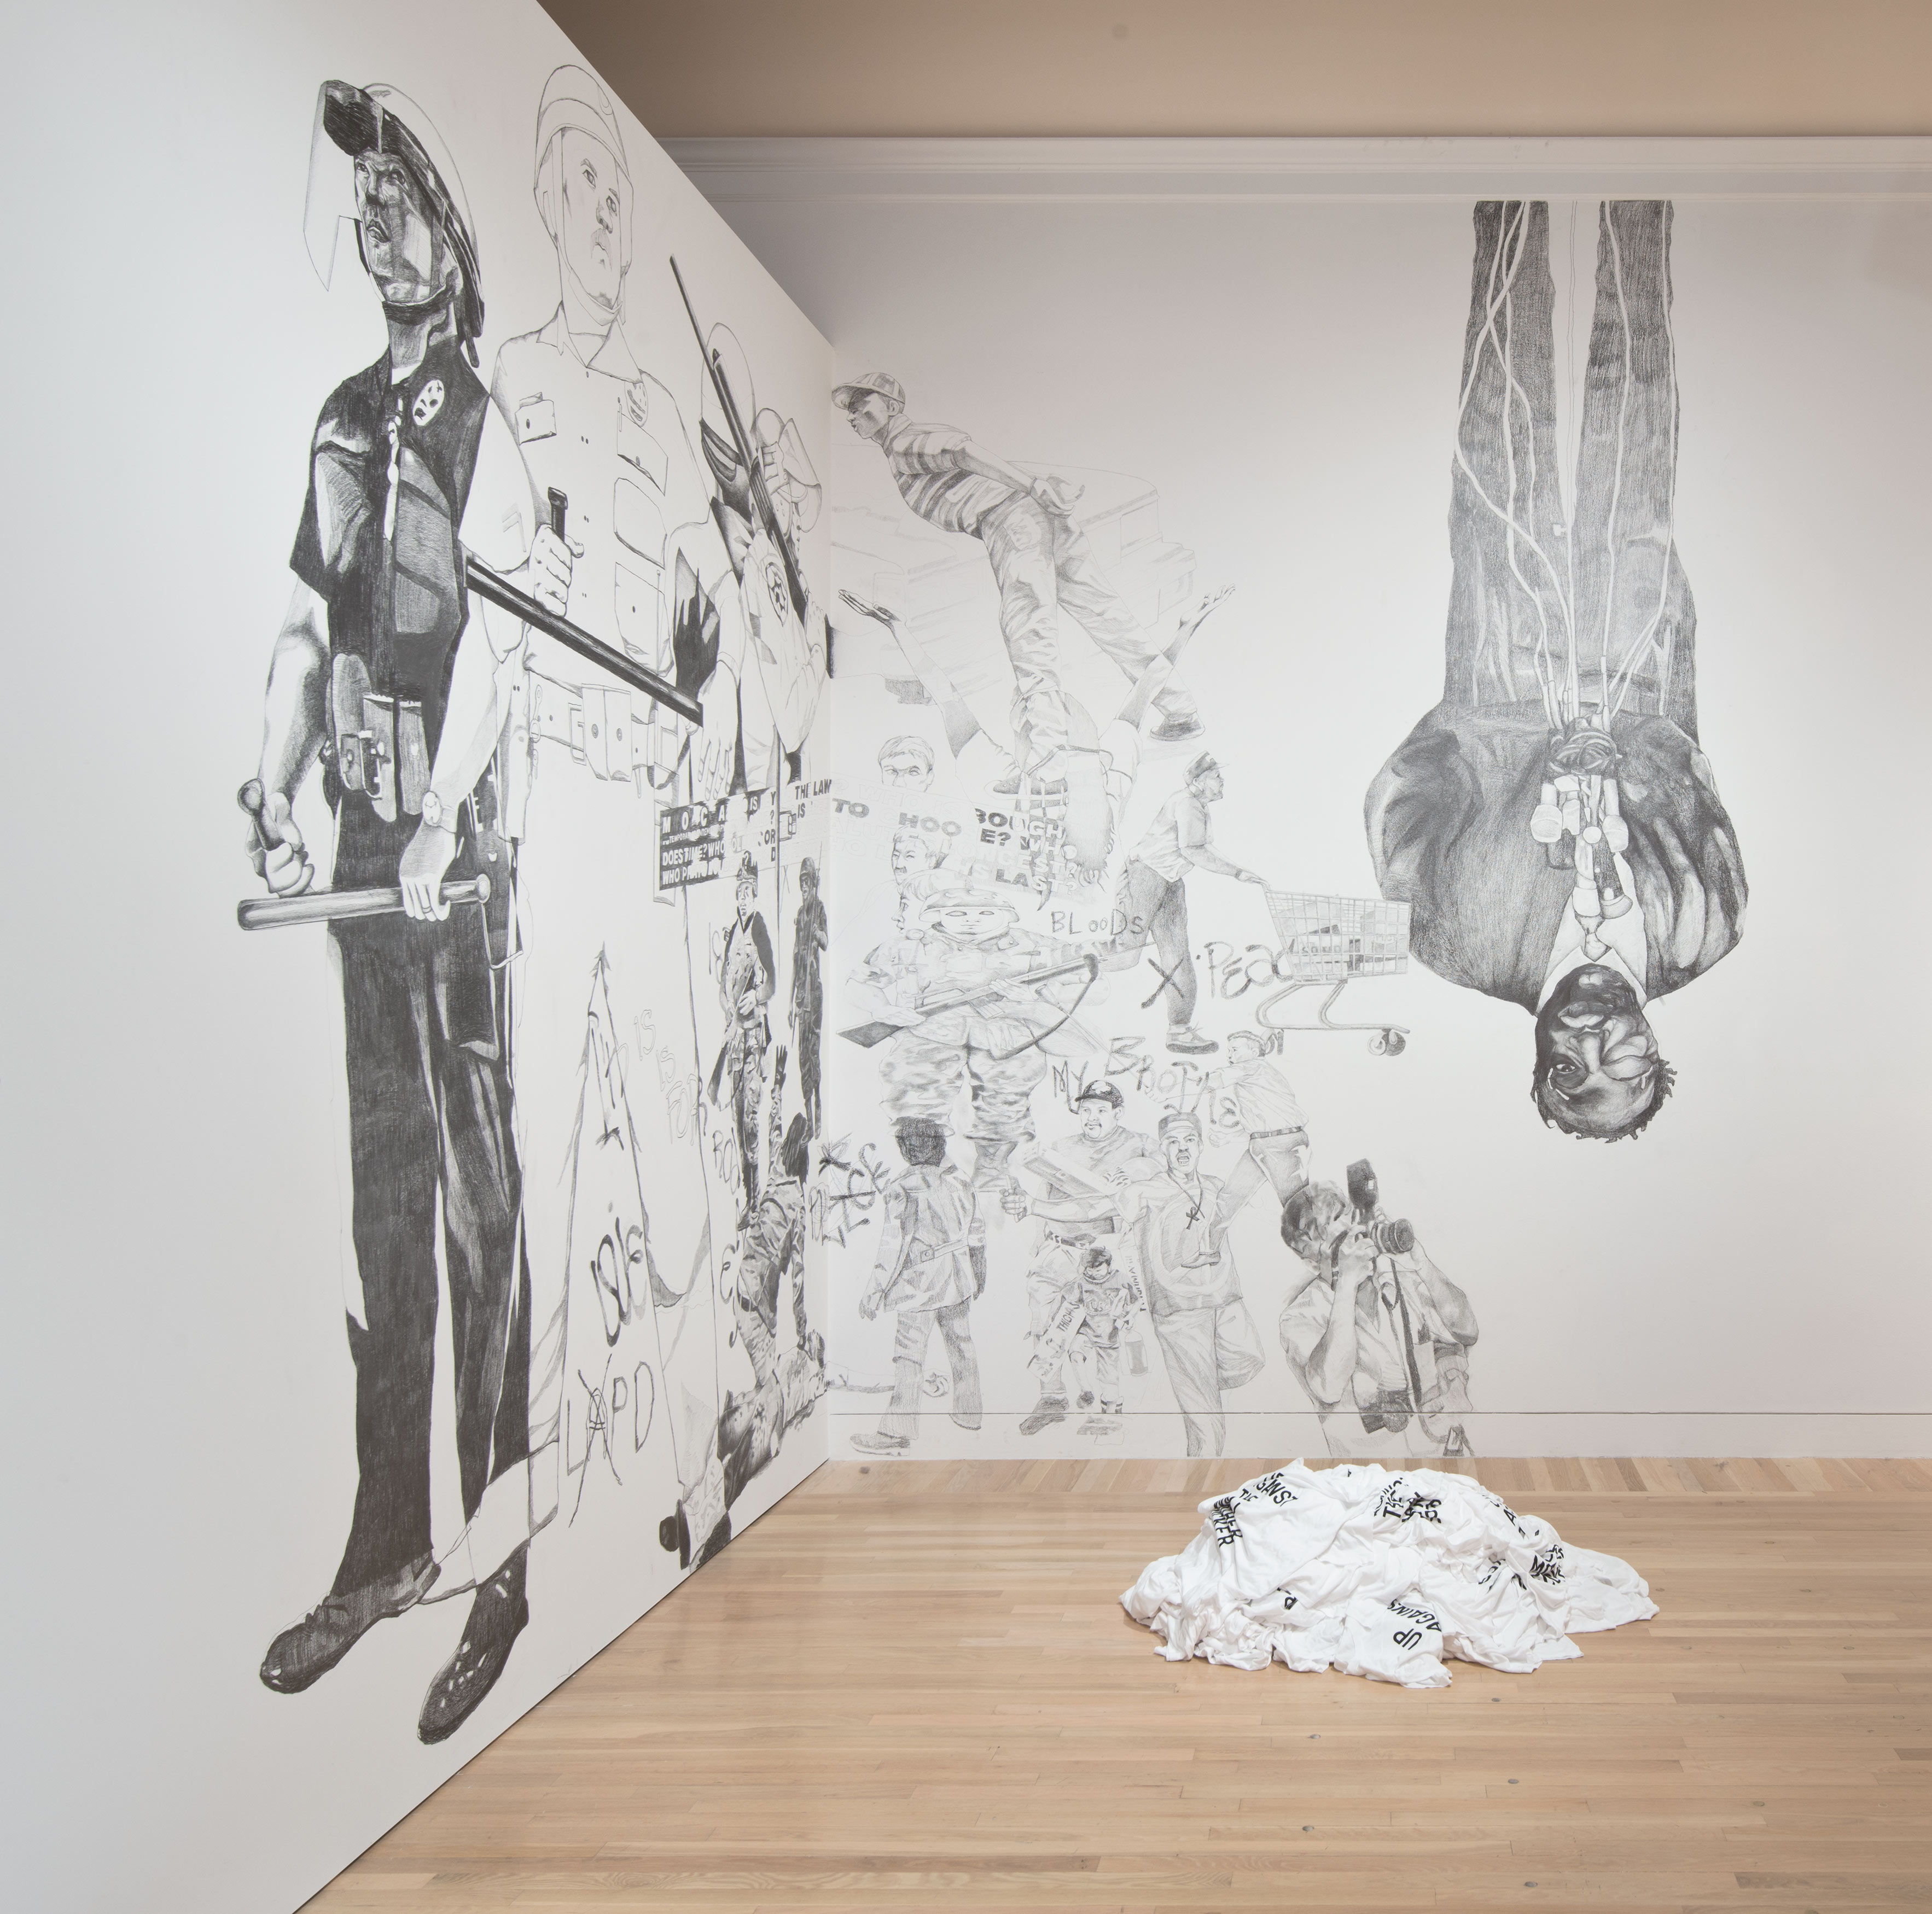 untitled 2014 (up against the wall motherfucker), by Rirkrit Tiravanija, 2014